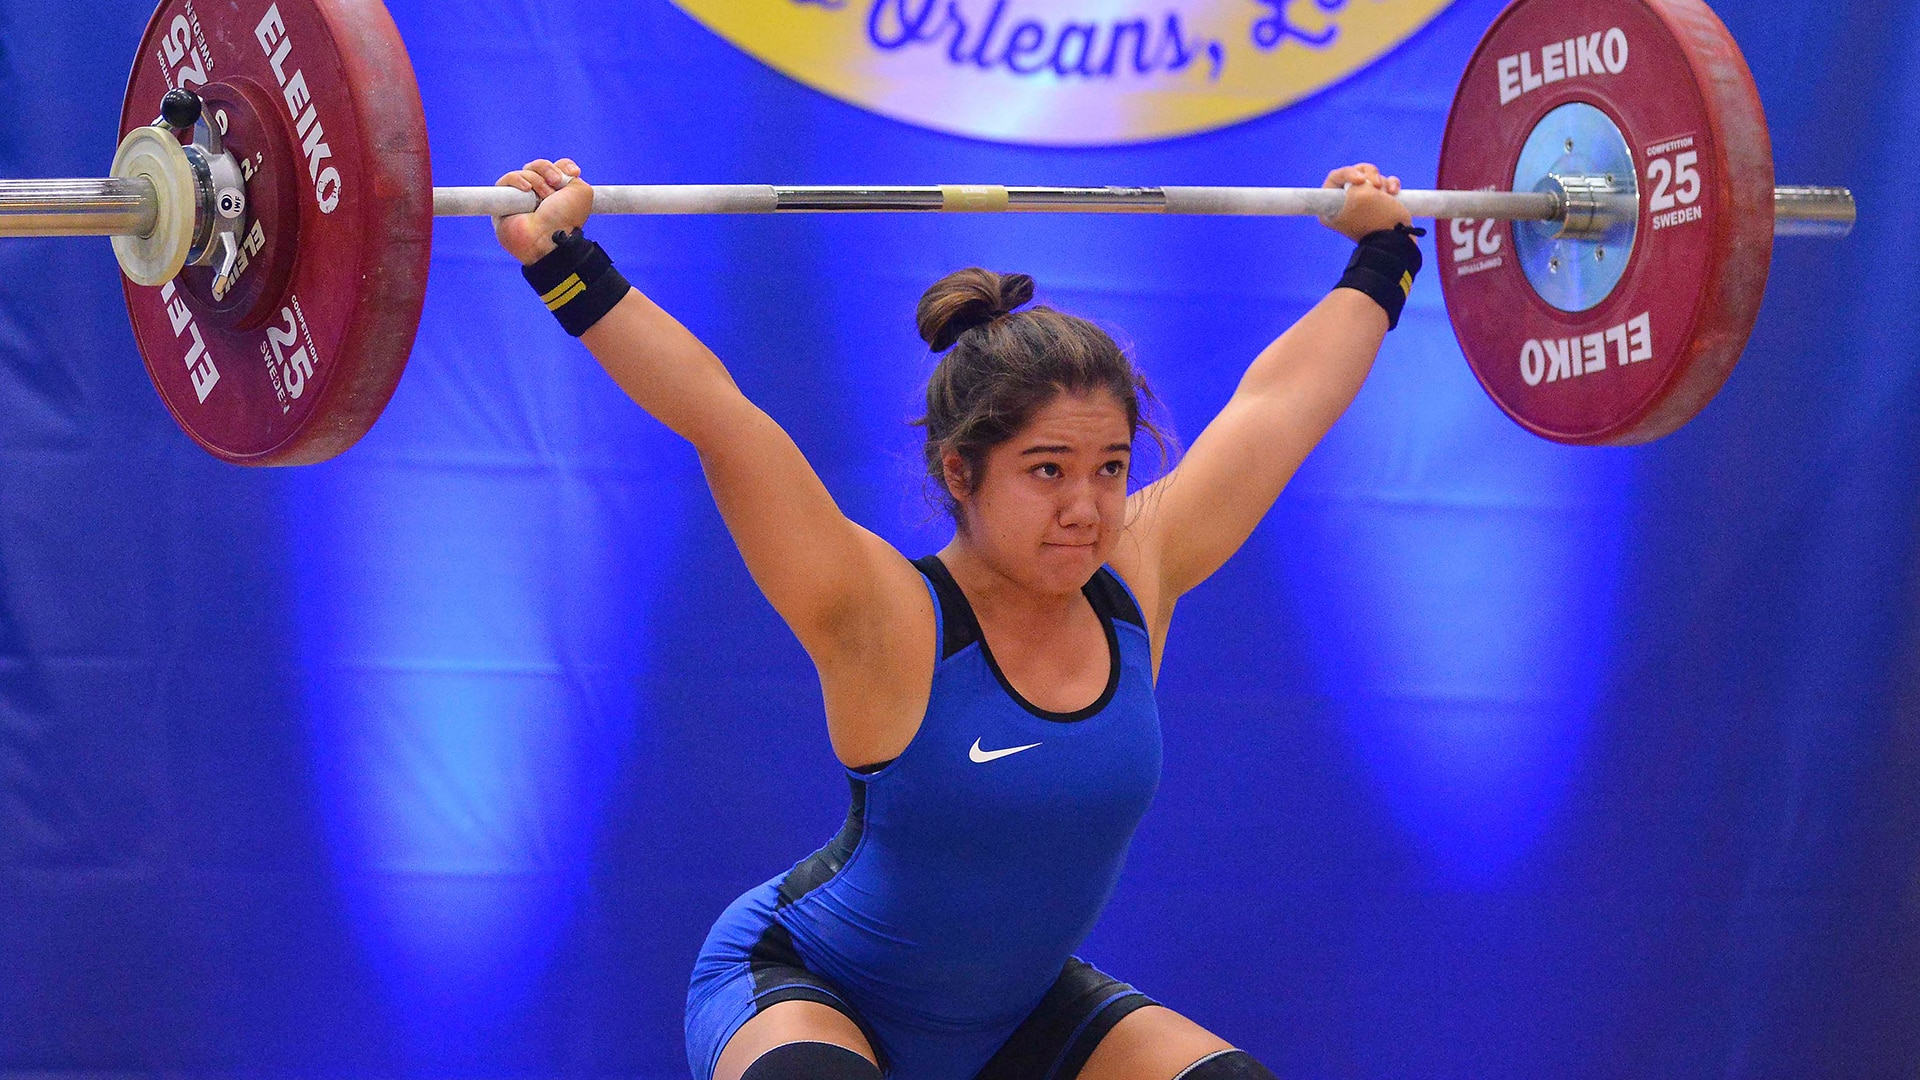 Jourdan Delacruz gave her Olympic qualification bid a boost with a record-breaking Pan American Championships performance.